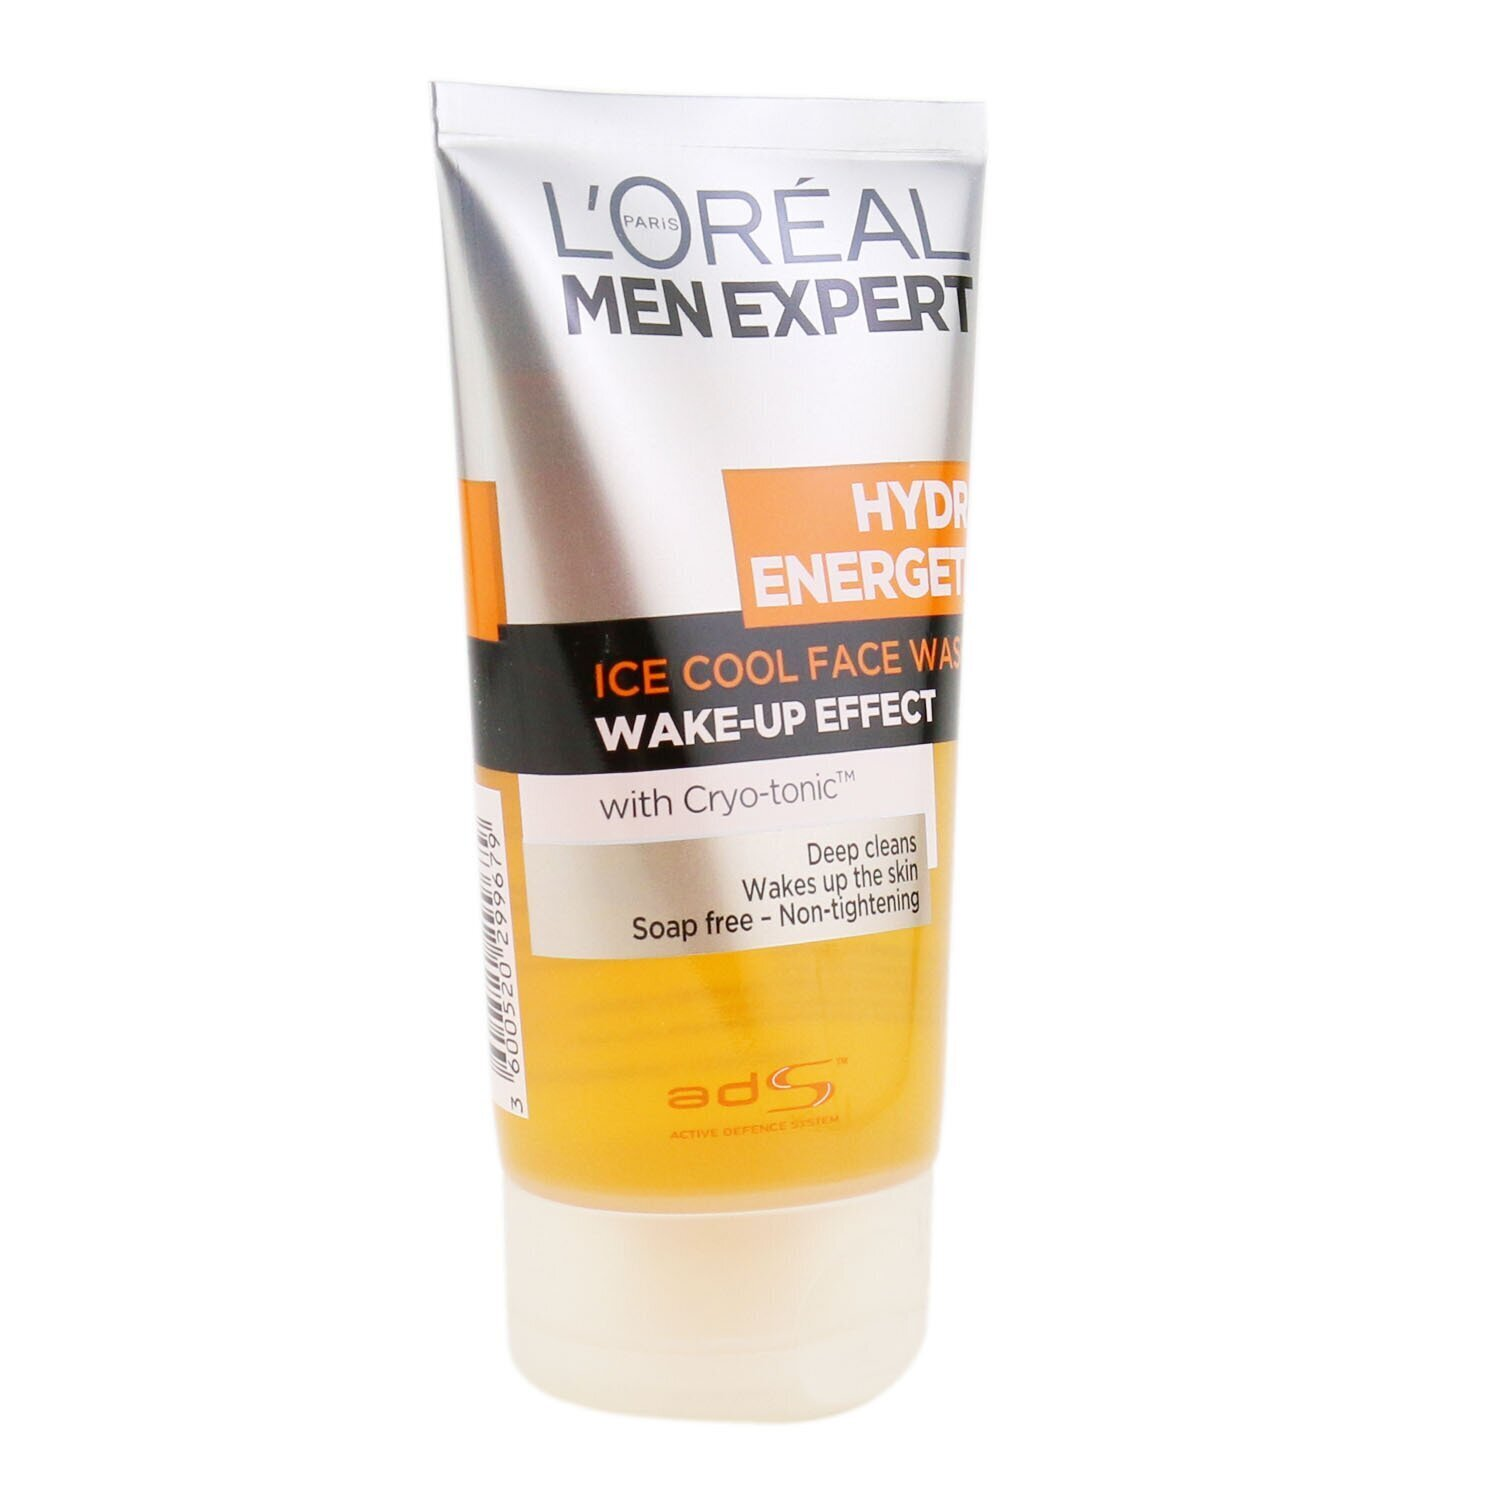 萊雅 L'Oreal - 男士勁能醒膚泡沫潔面凝膠Men Expert Hydra Energetic Foaming Cleansing Gel